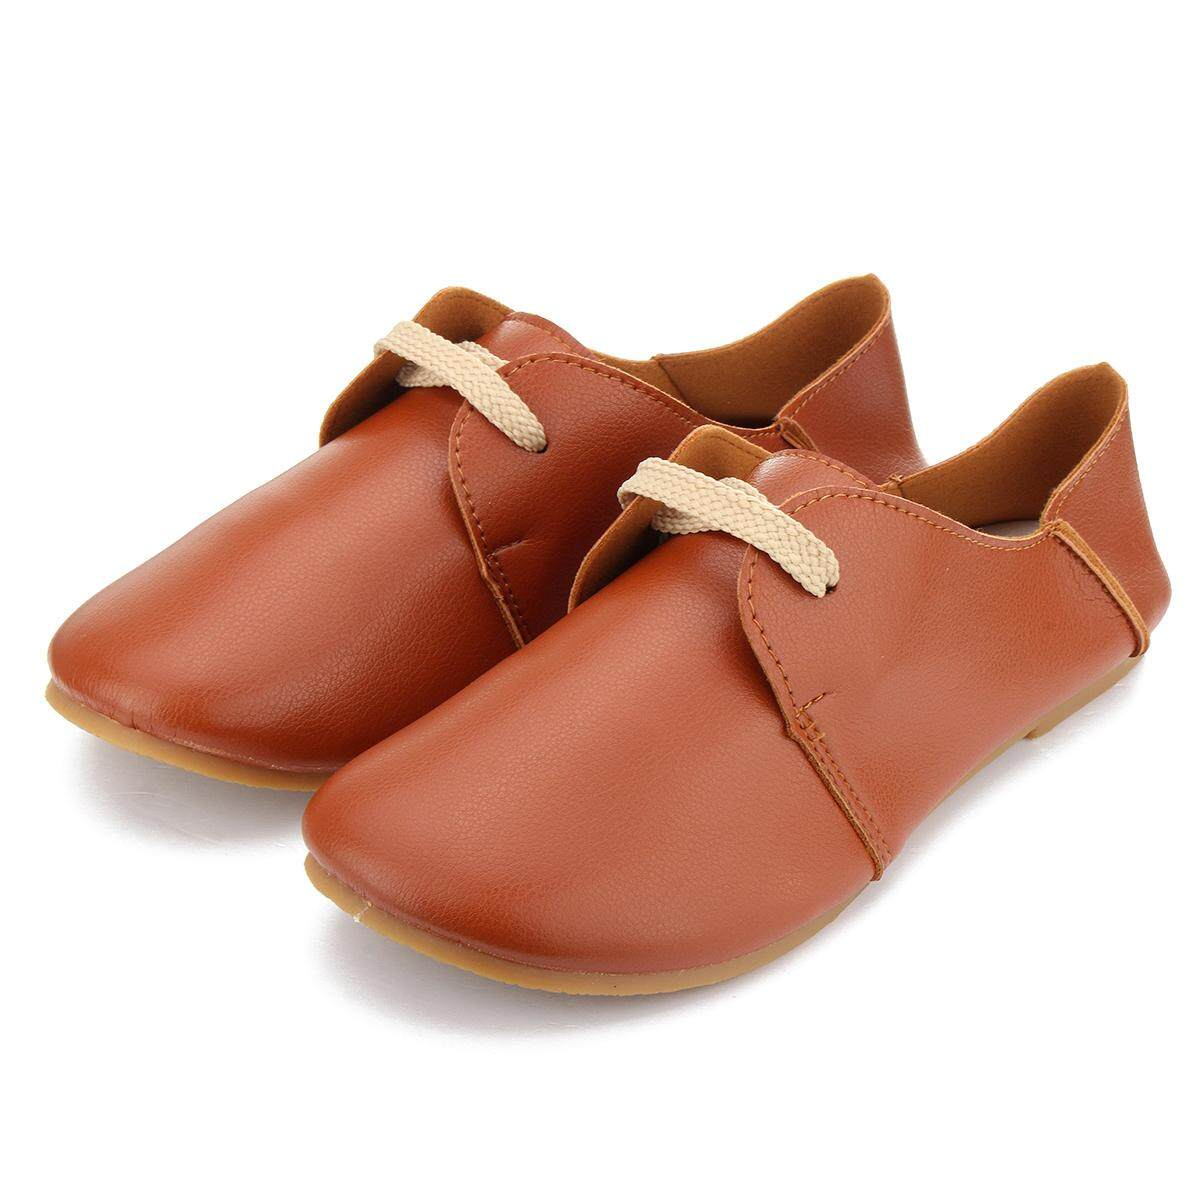 Fashion Women Flats Shoes Lace Up Comfort Shoes Casual Leather Oxfords Loafers - intl